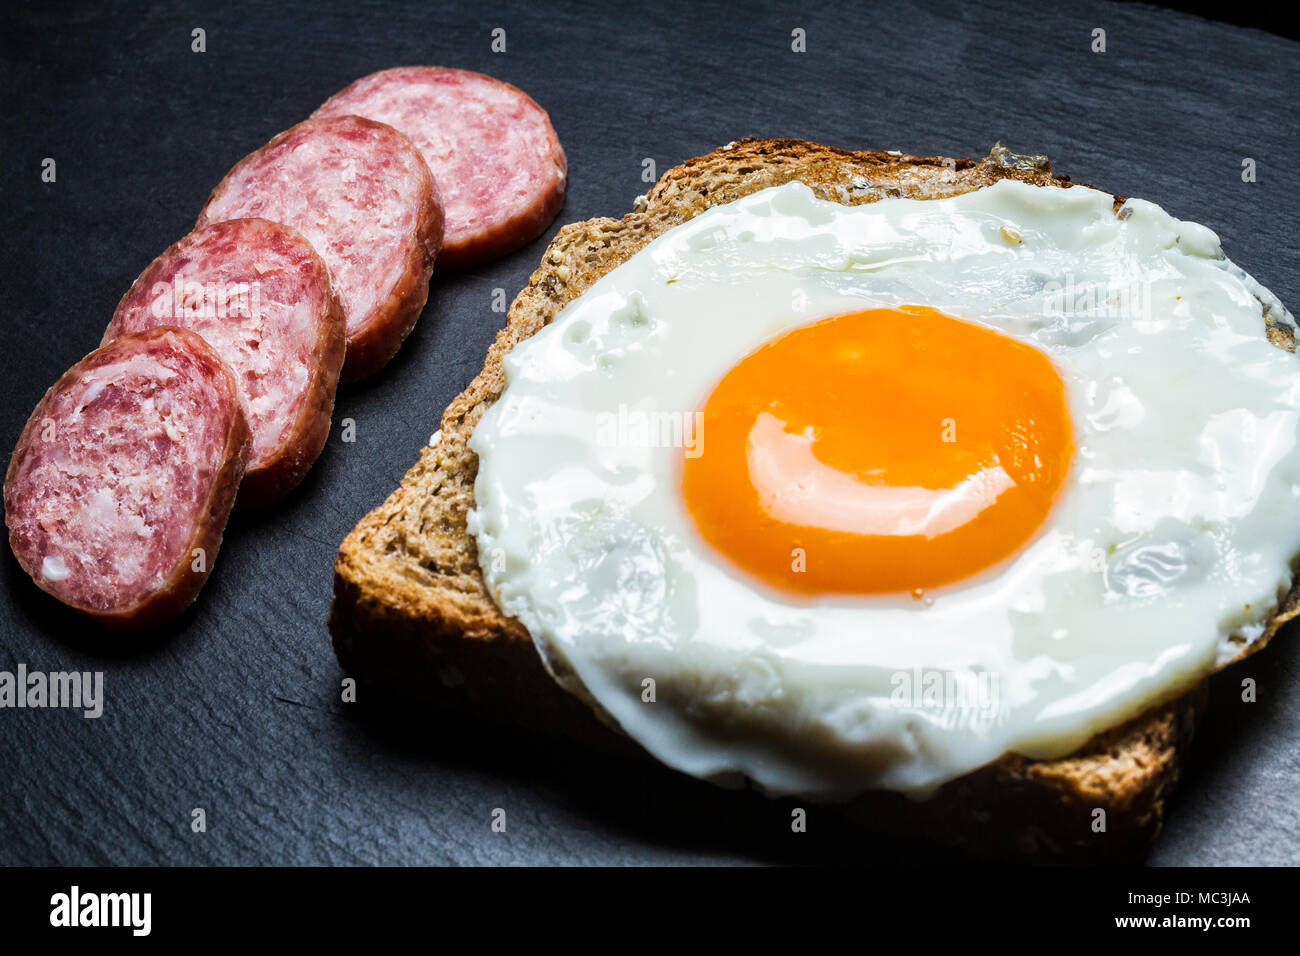 Fried egg on a toast and silced sausage. Florianopolis, Santa Catarina, Brazil. - Stock Image